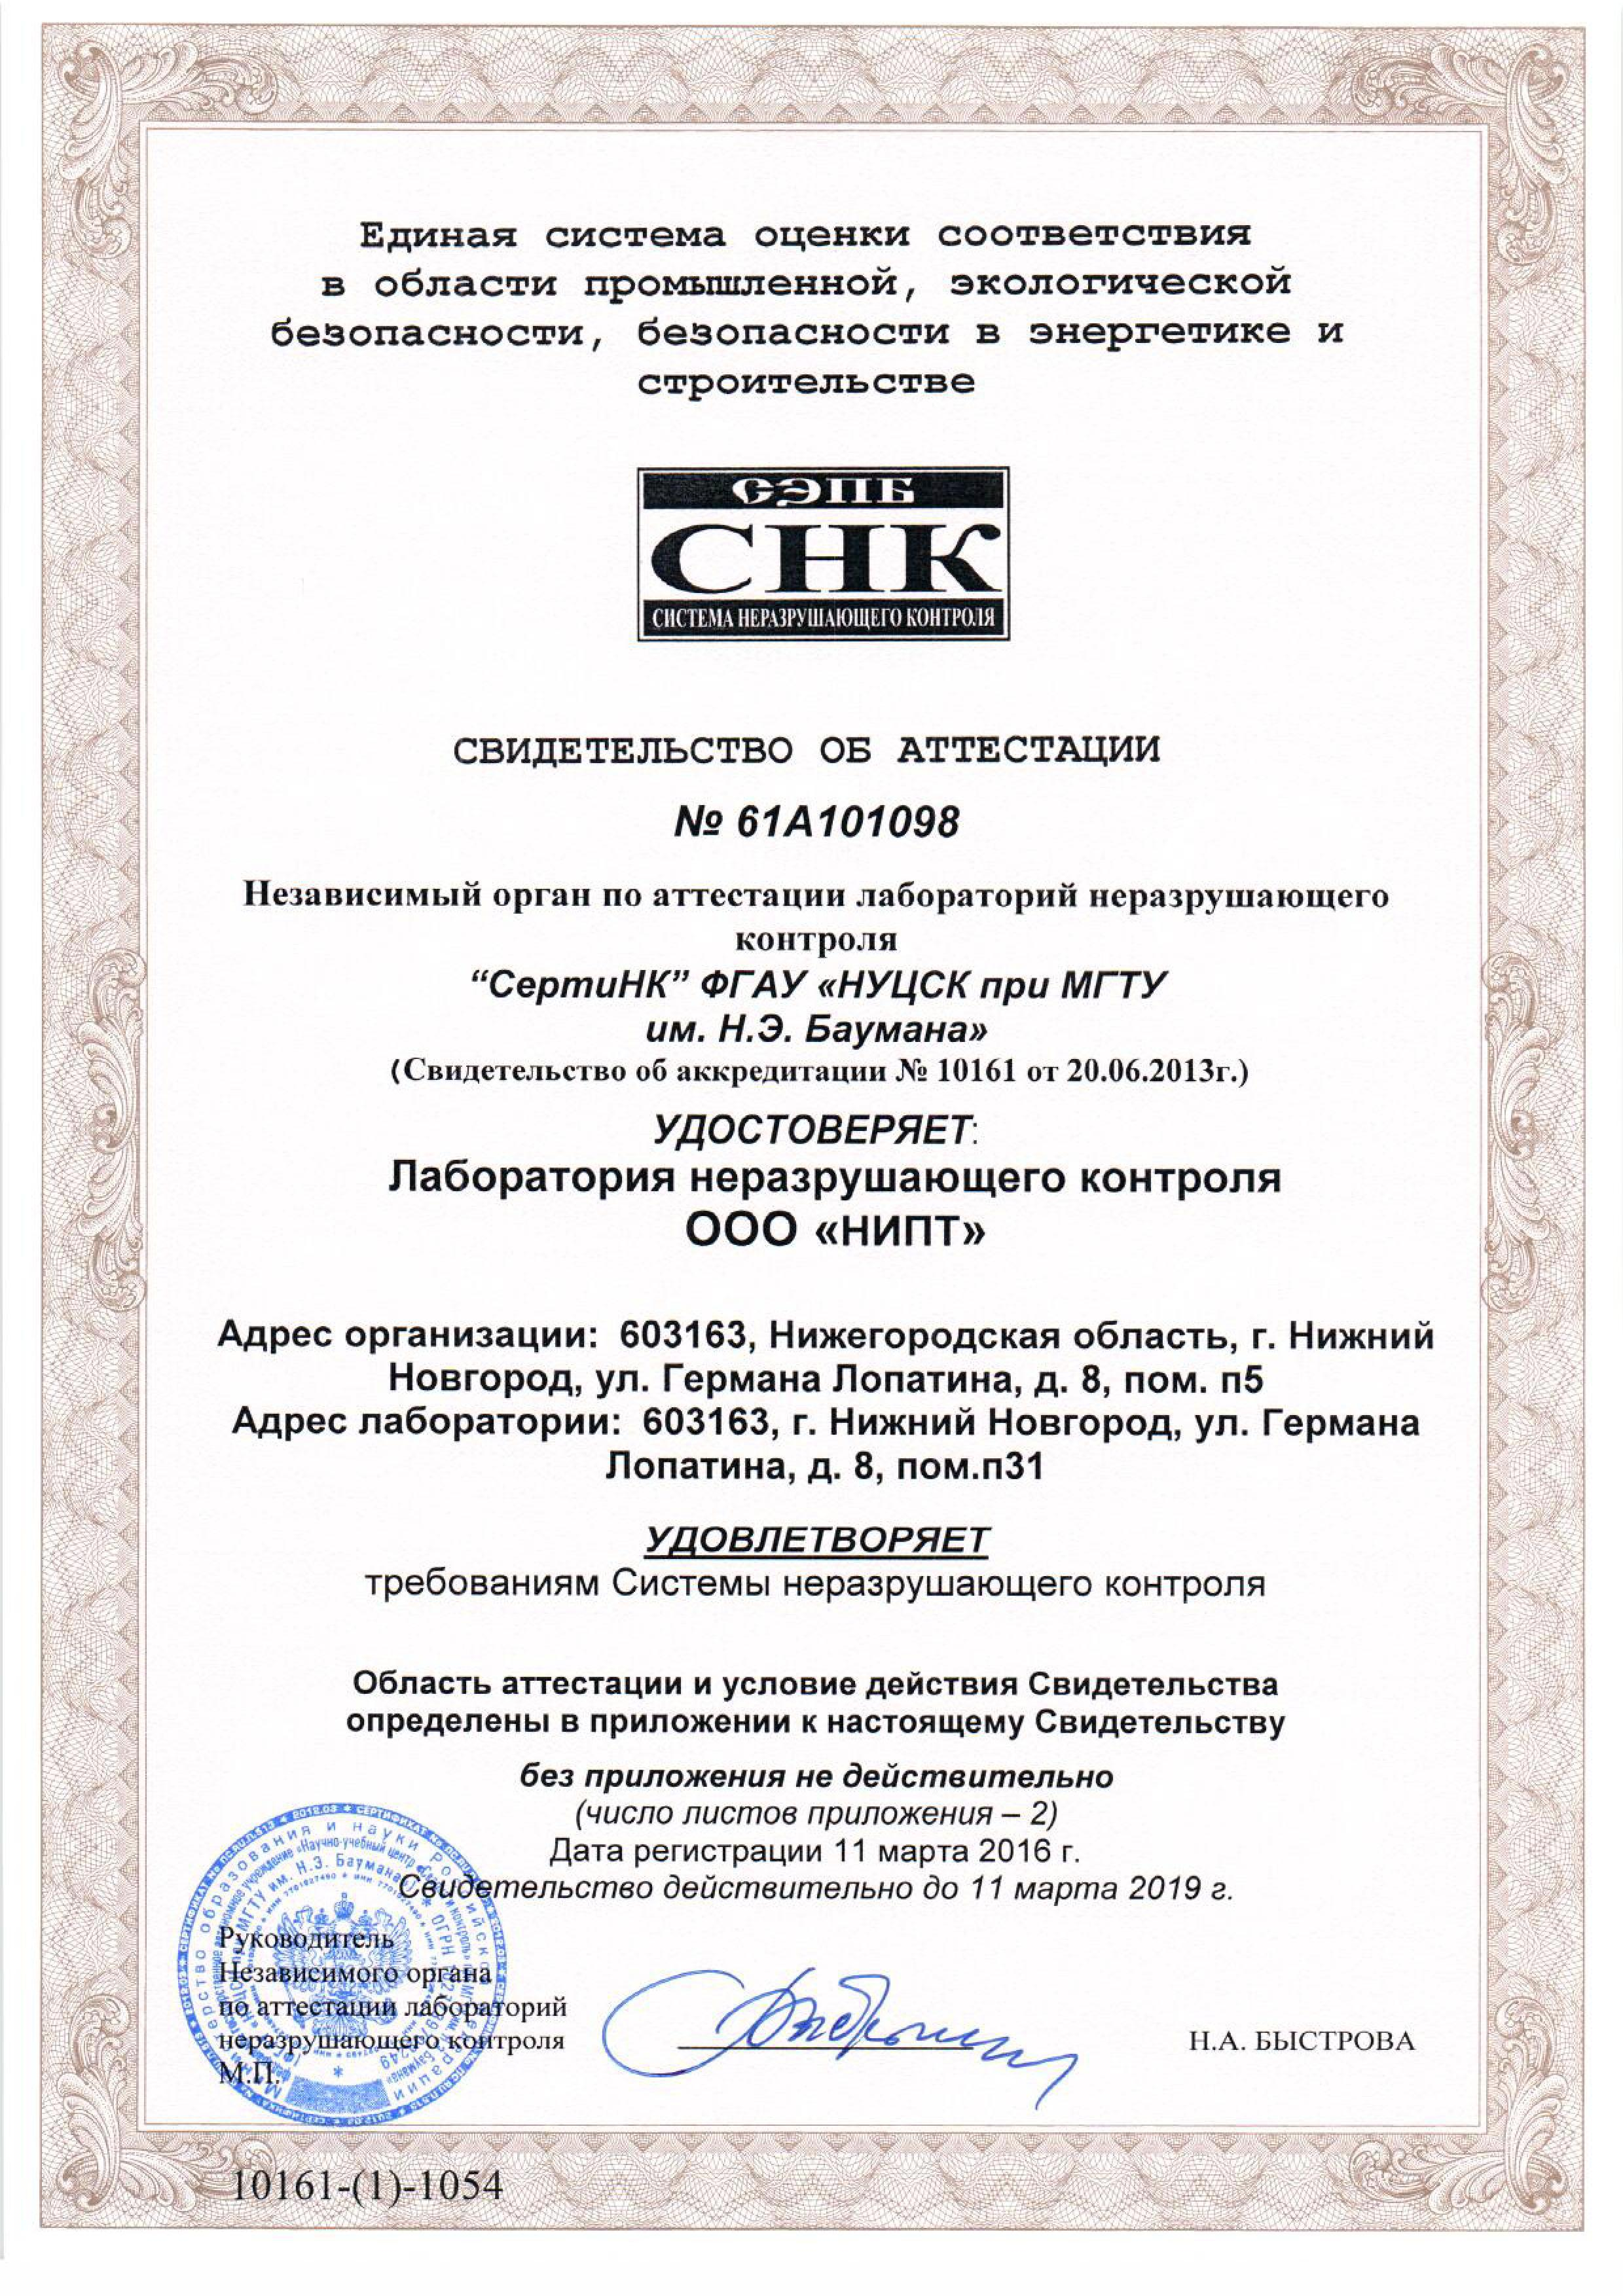 Certificate №61А101098